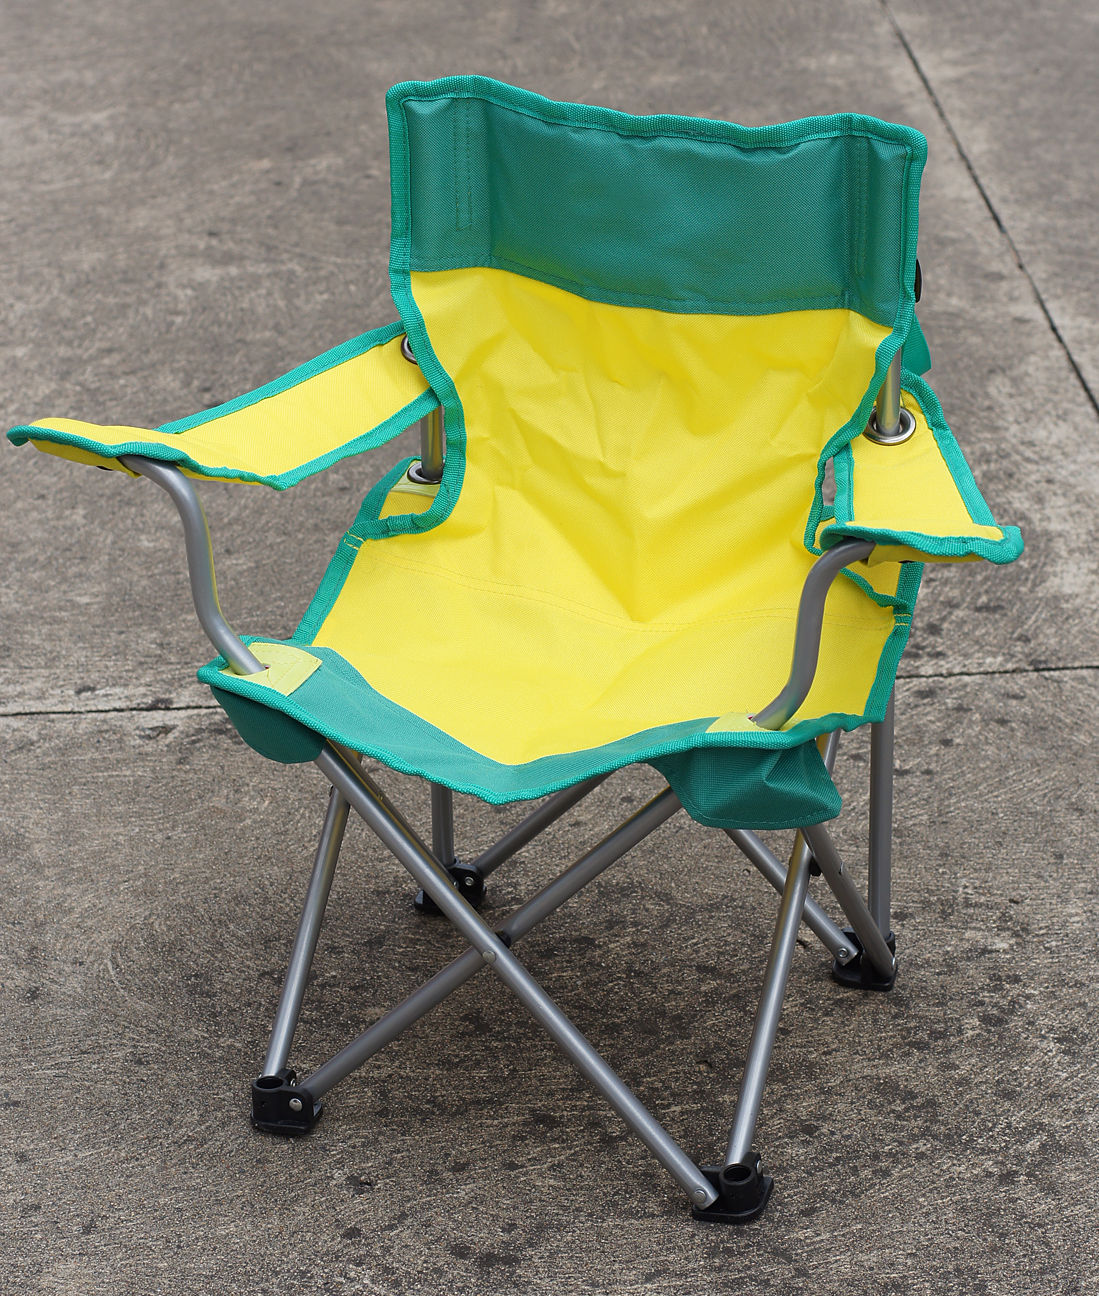 Kids Folding Chair with Arms Foldable Light Outdoor Camping Travel Children